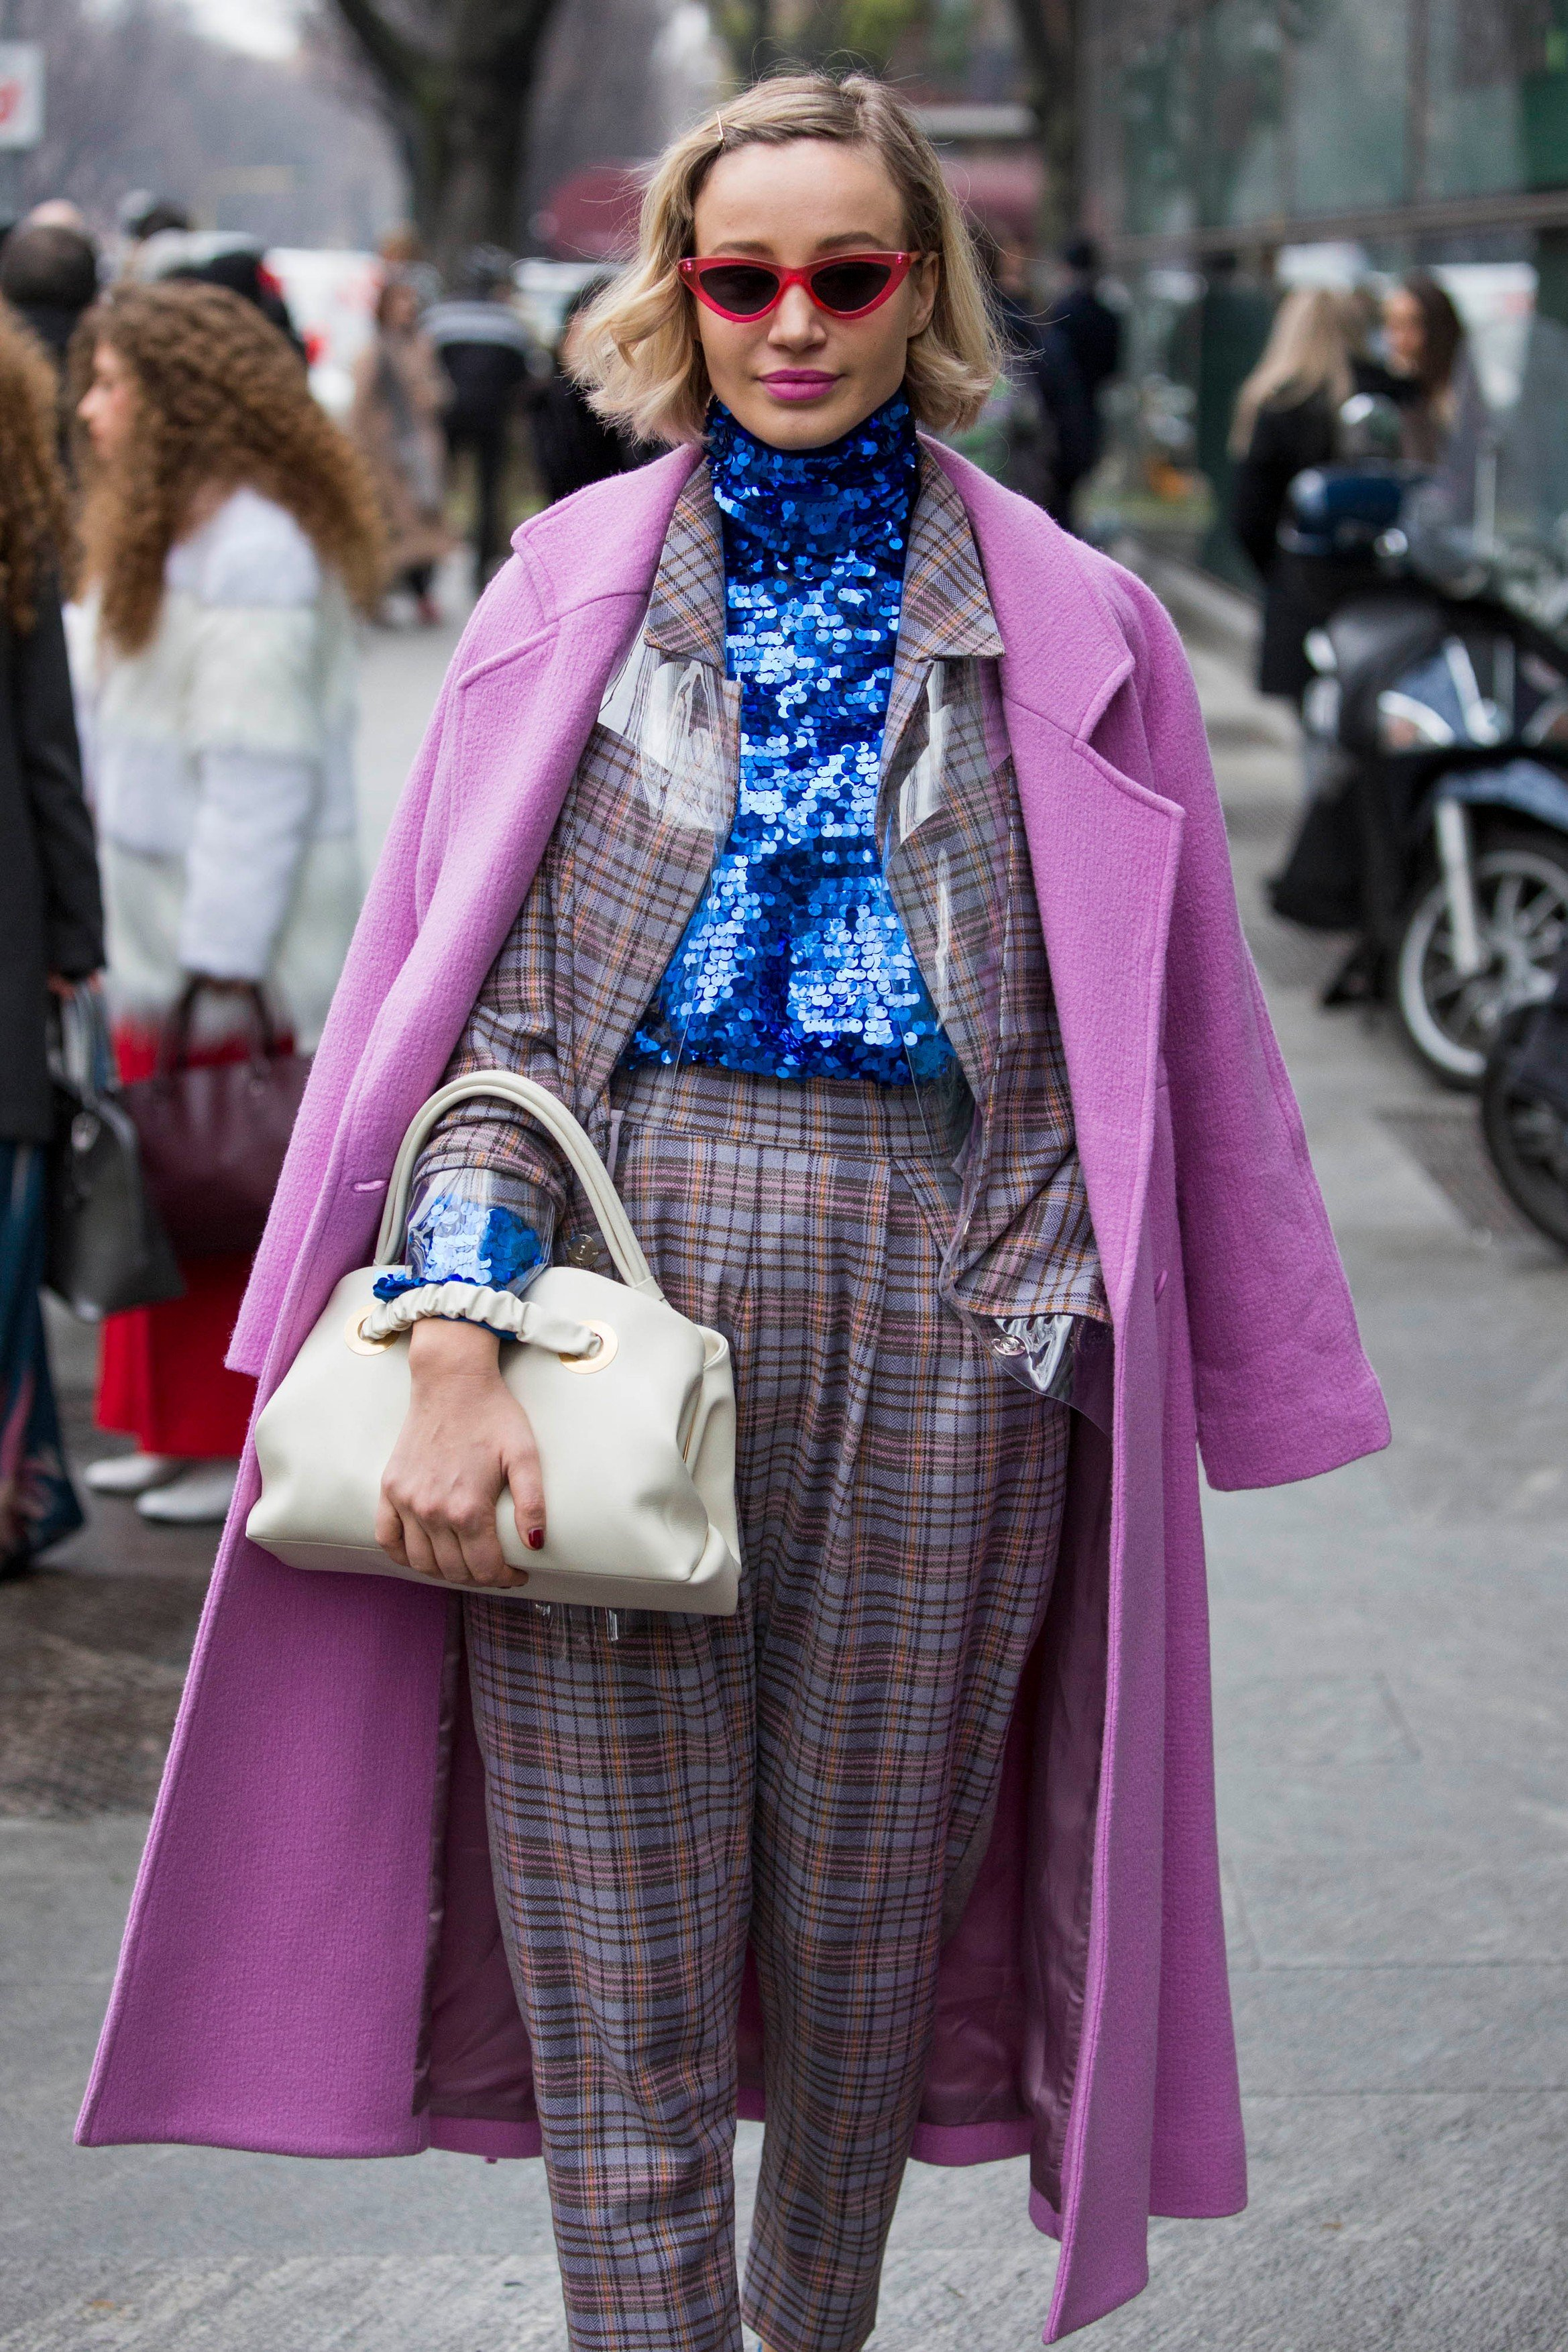 Fashion: street style at Milan Fashion Week 2018 outside of the Giorgio Armani show in Milan on February 24, 2018. 24 Feb 2018, Image: 364421688, License: Rights-managed, Restrictions: World Rights, Model Release: no, Credit line: Profimedia, Mega Agency